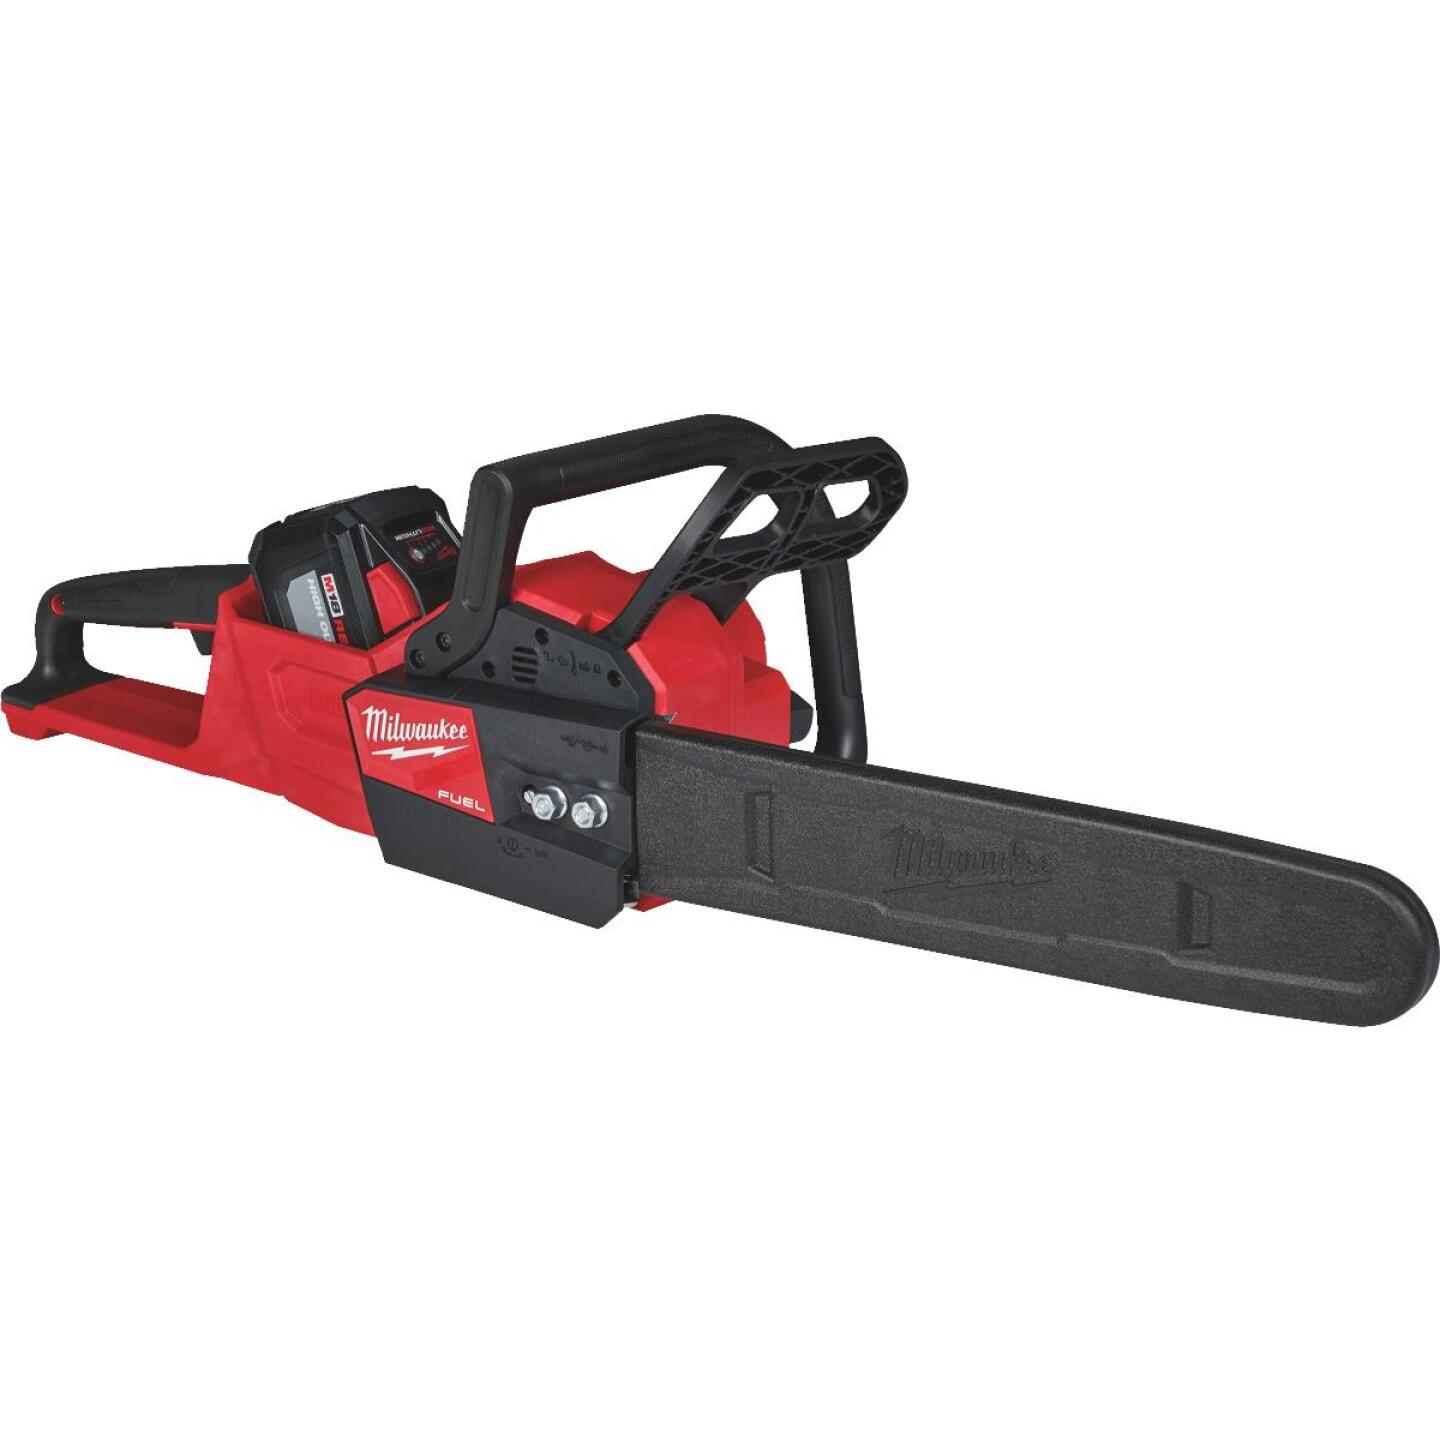 Milwaukee M18 FUEL 16 In. 18V Lithium Ion Cordless Chainsaw Kit Image 2